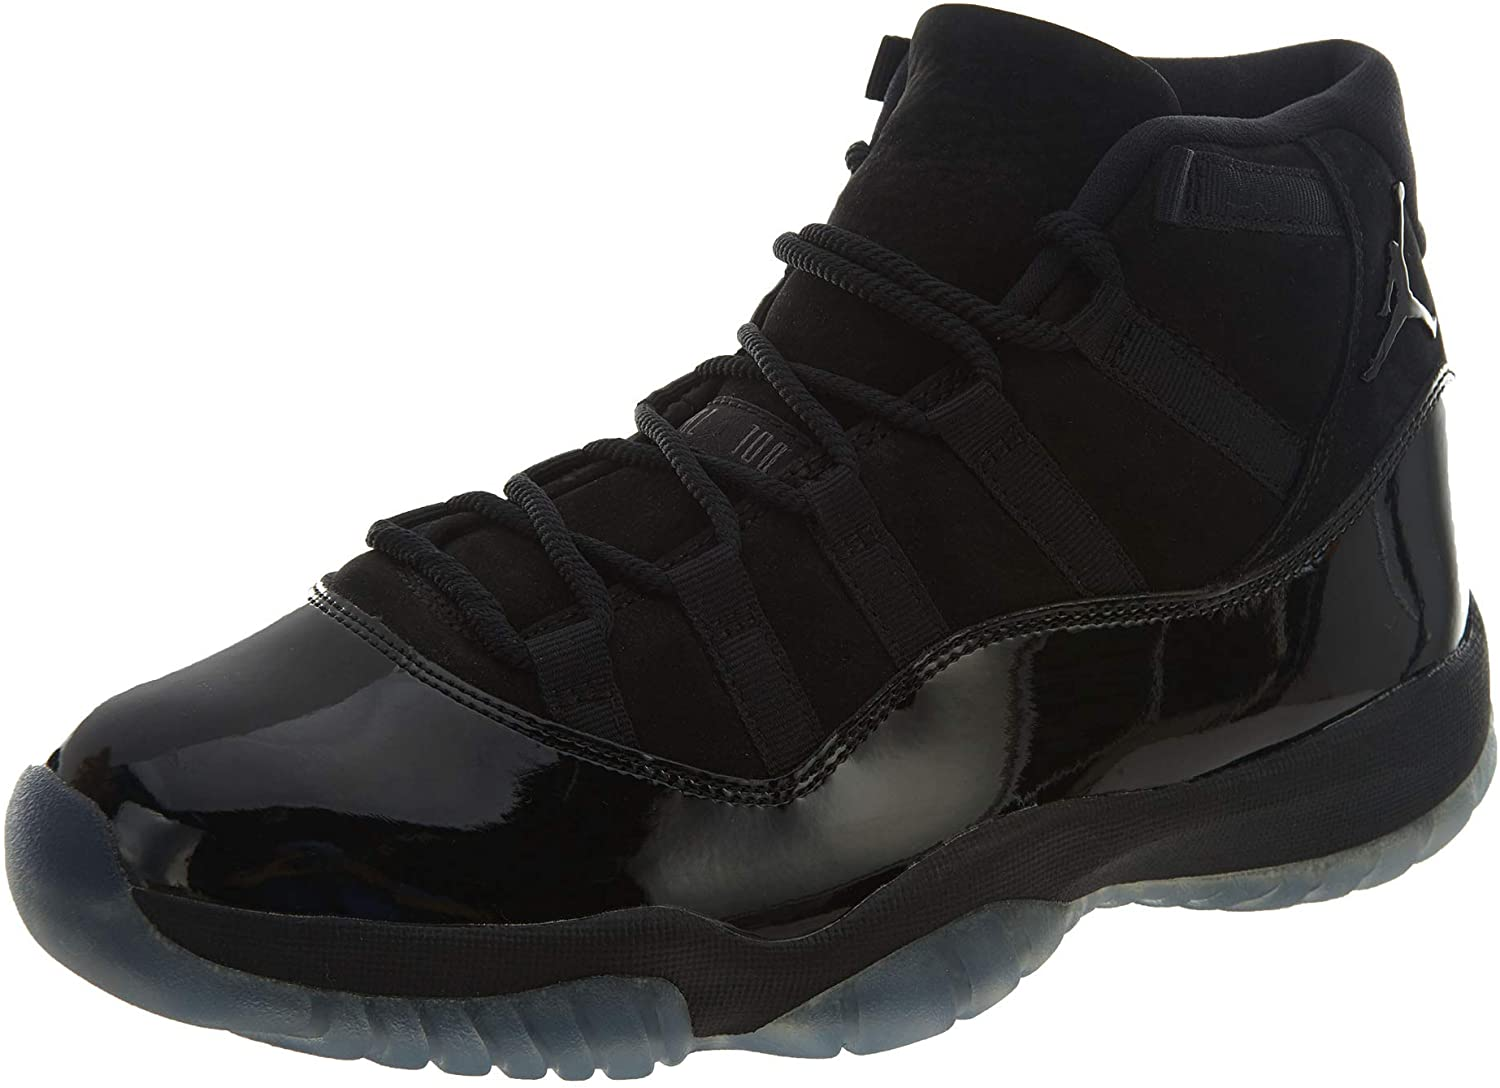 Air Jordan 11 Blackout price